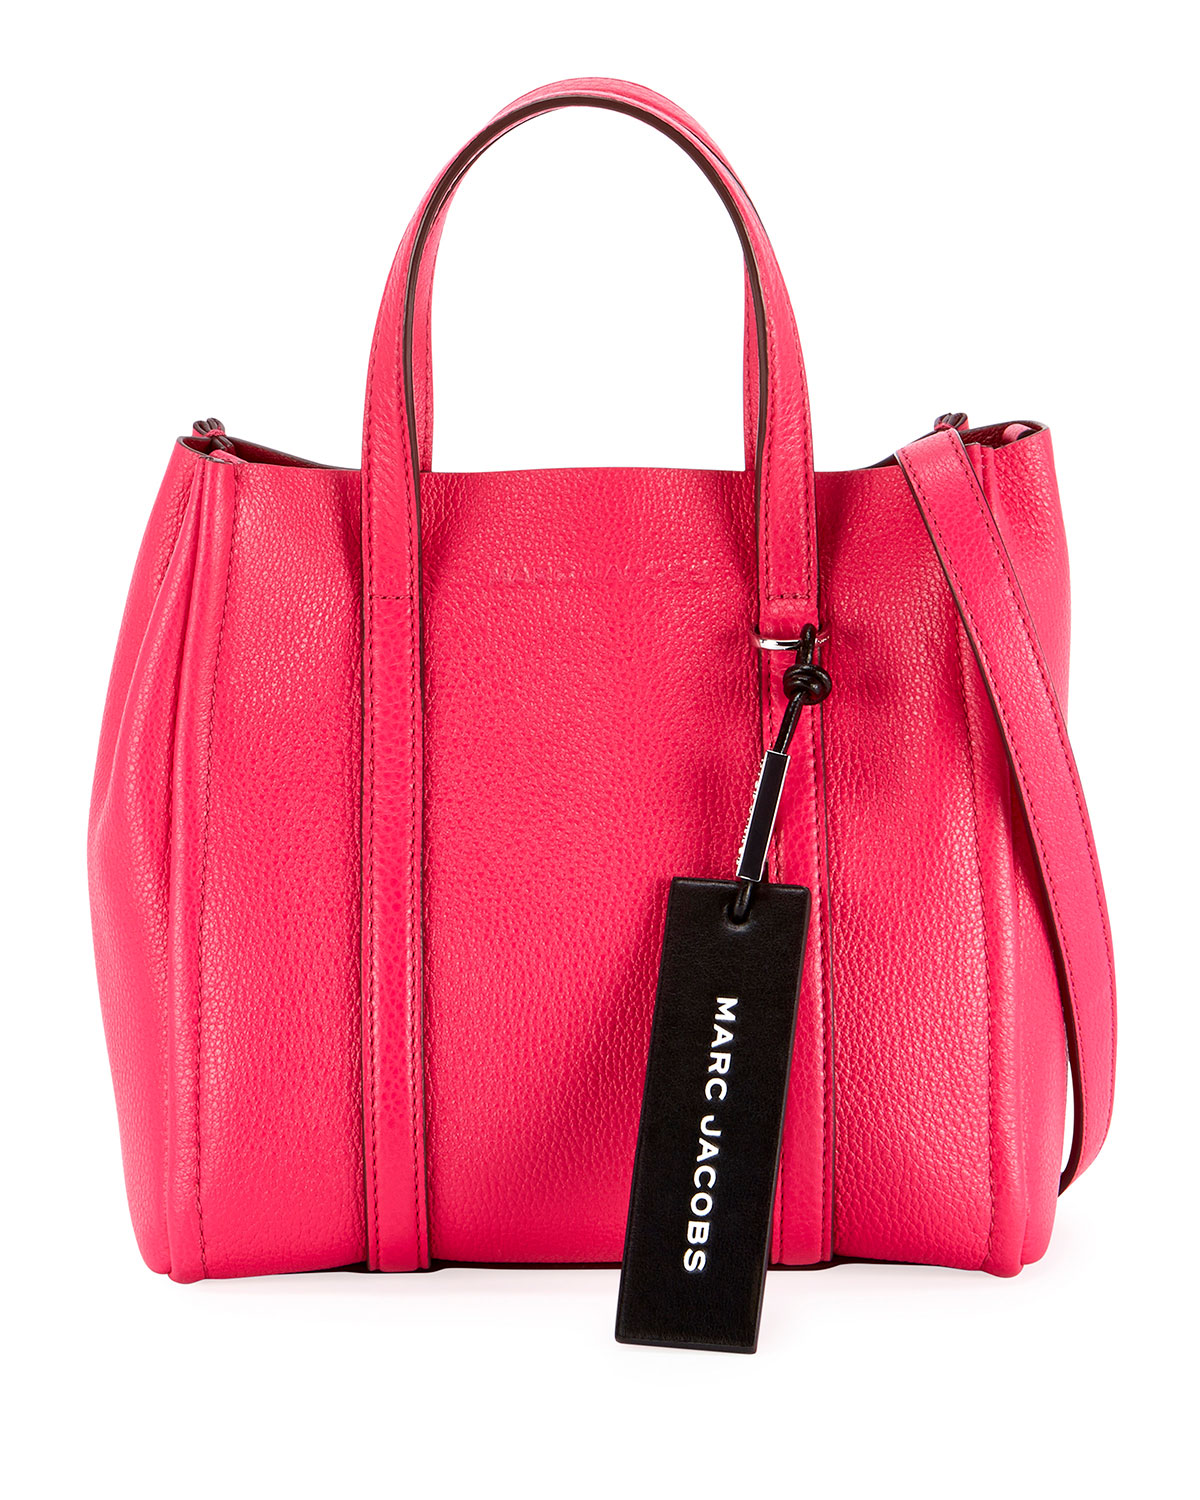 f9ea6fe56c69 Marc Jacobs The Tag Leather Tote Bag